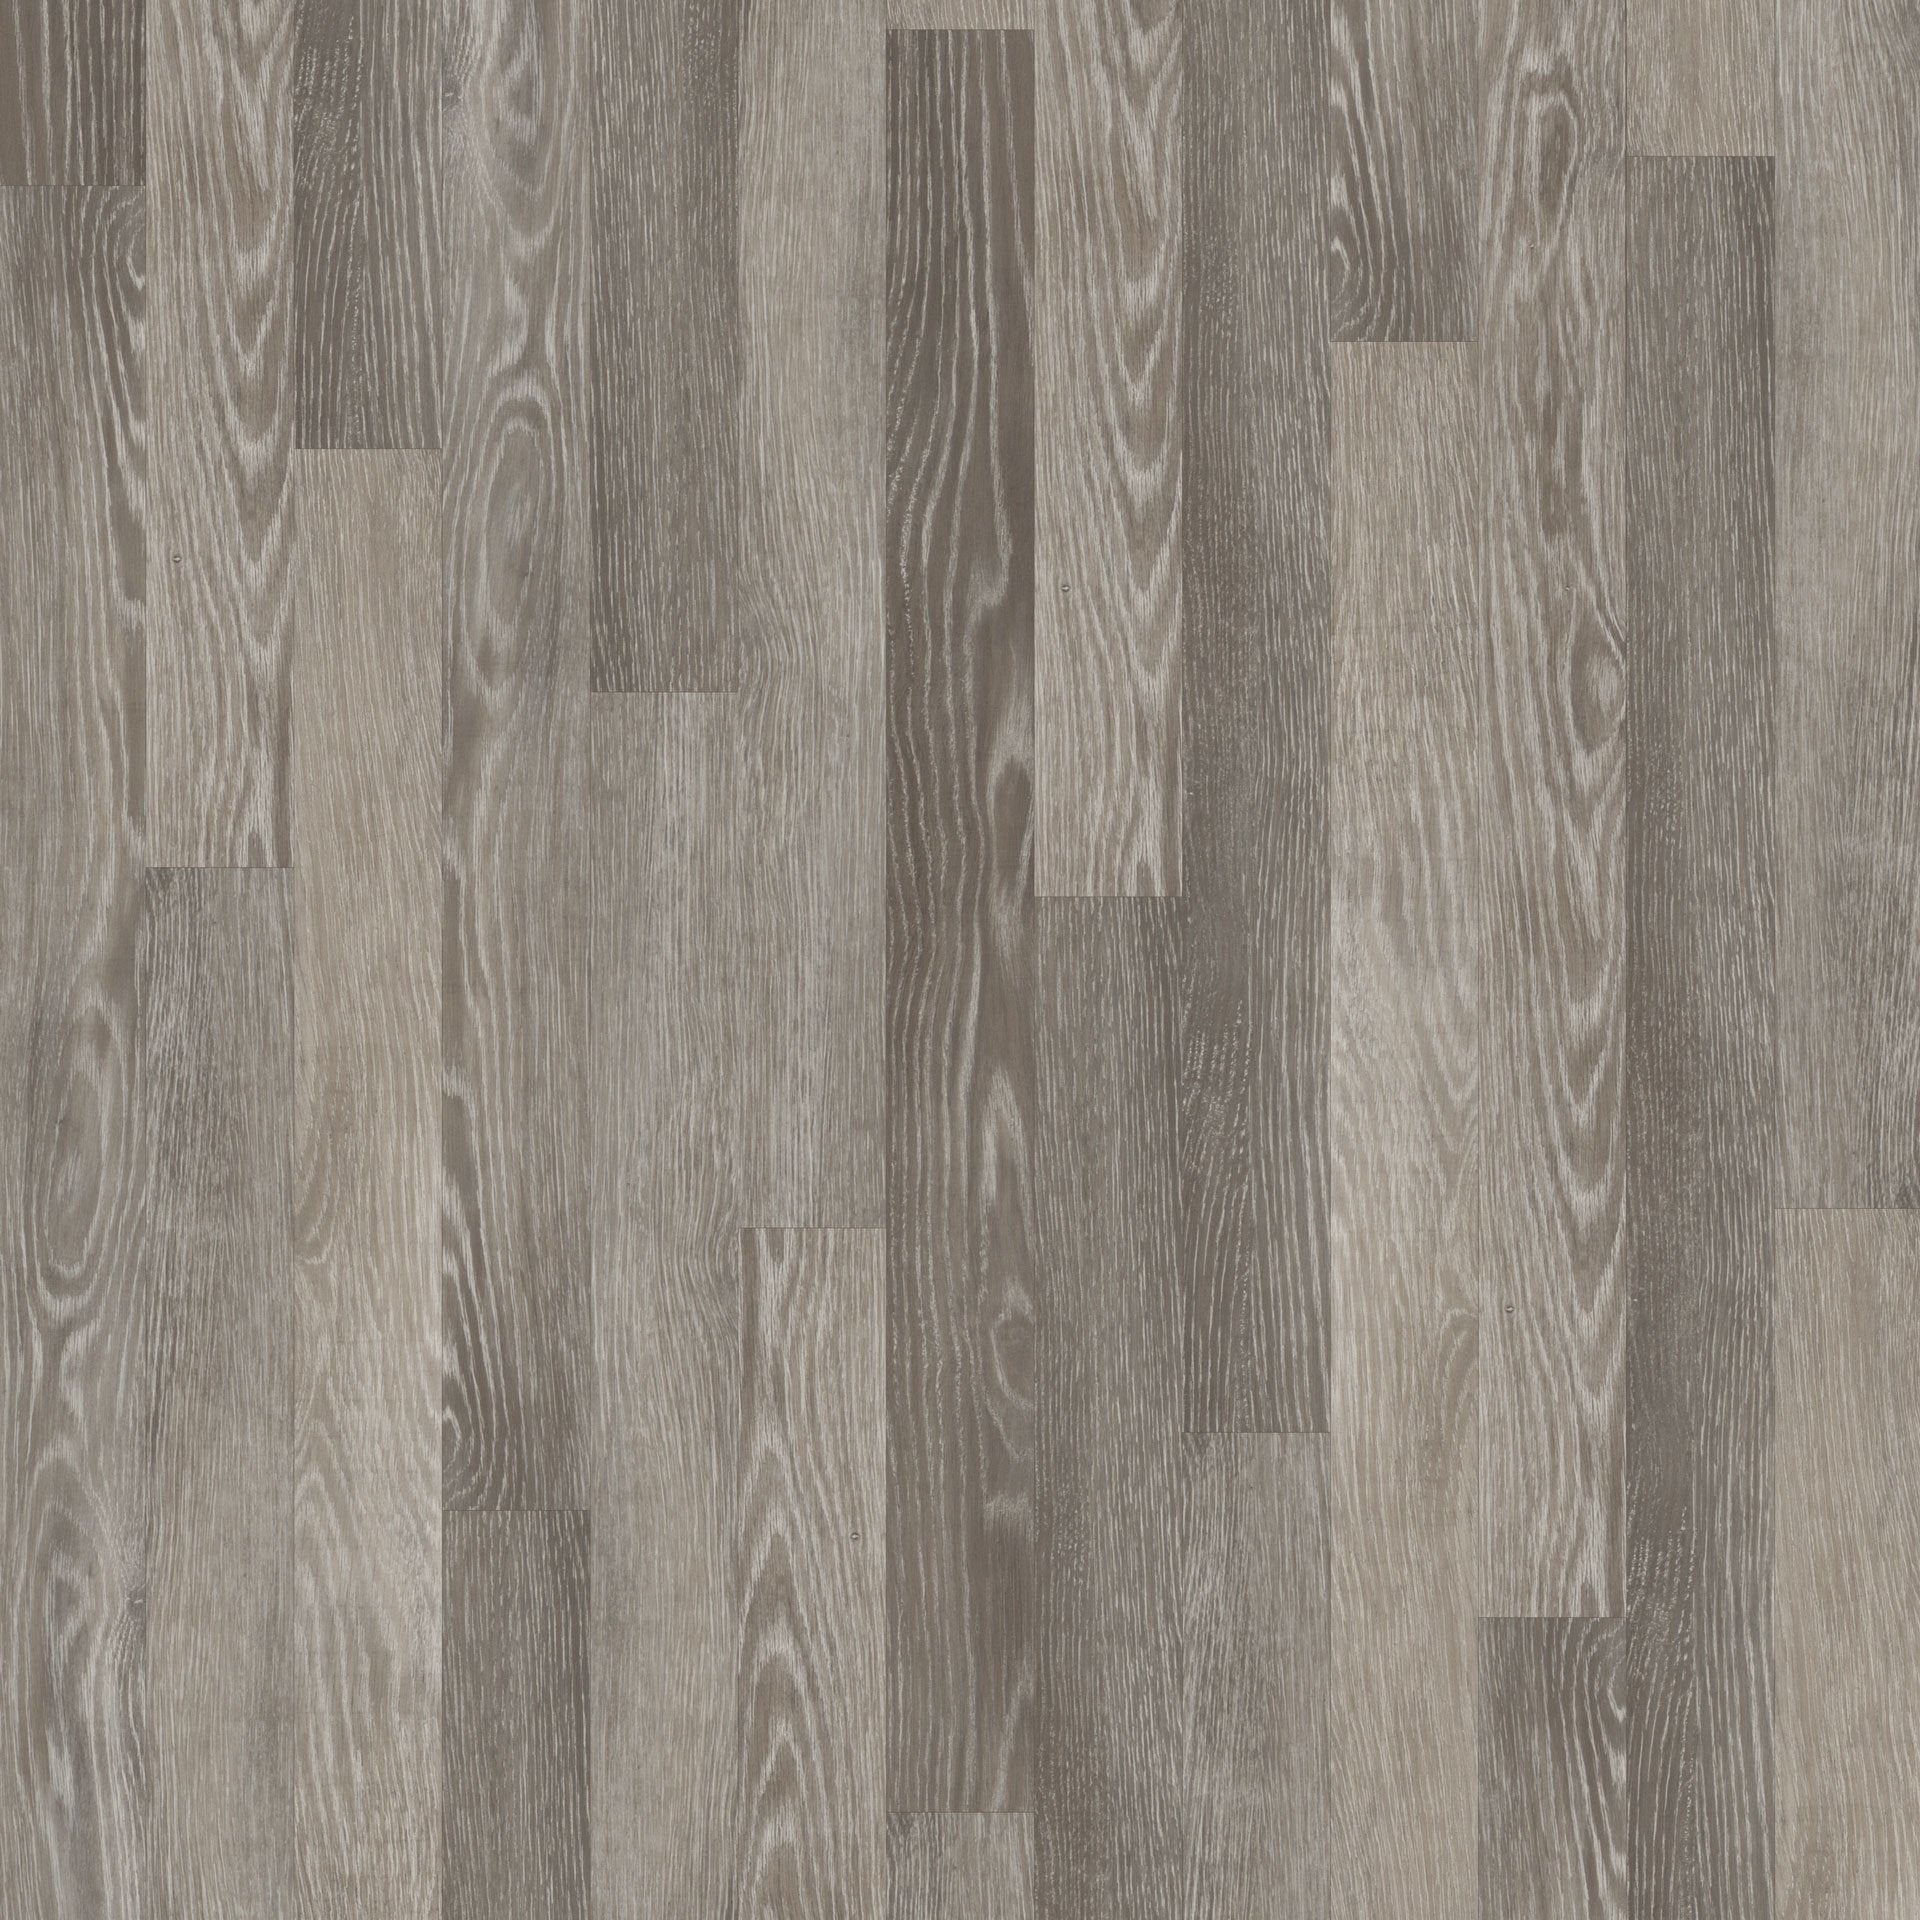 MV1114 Limed Silk Oak